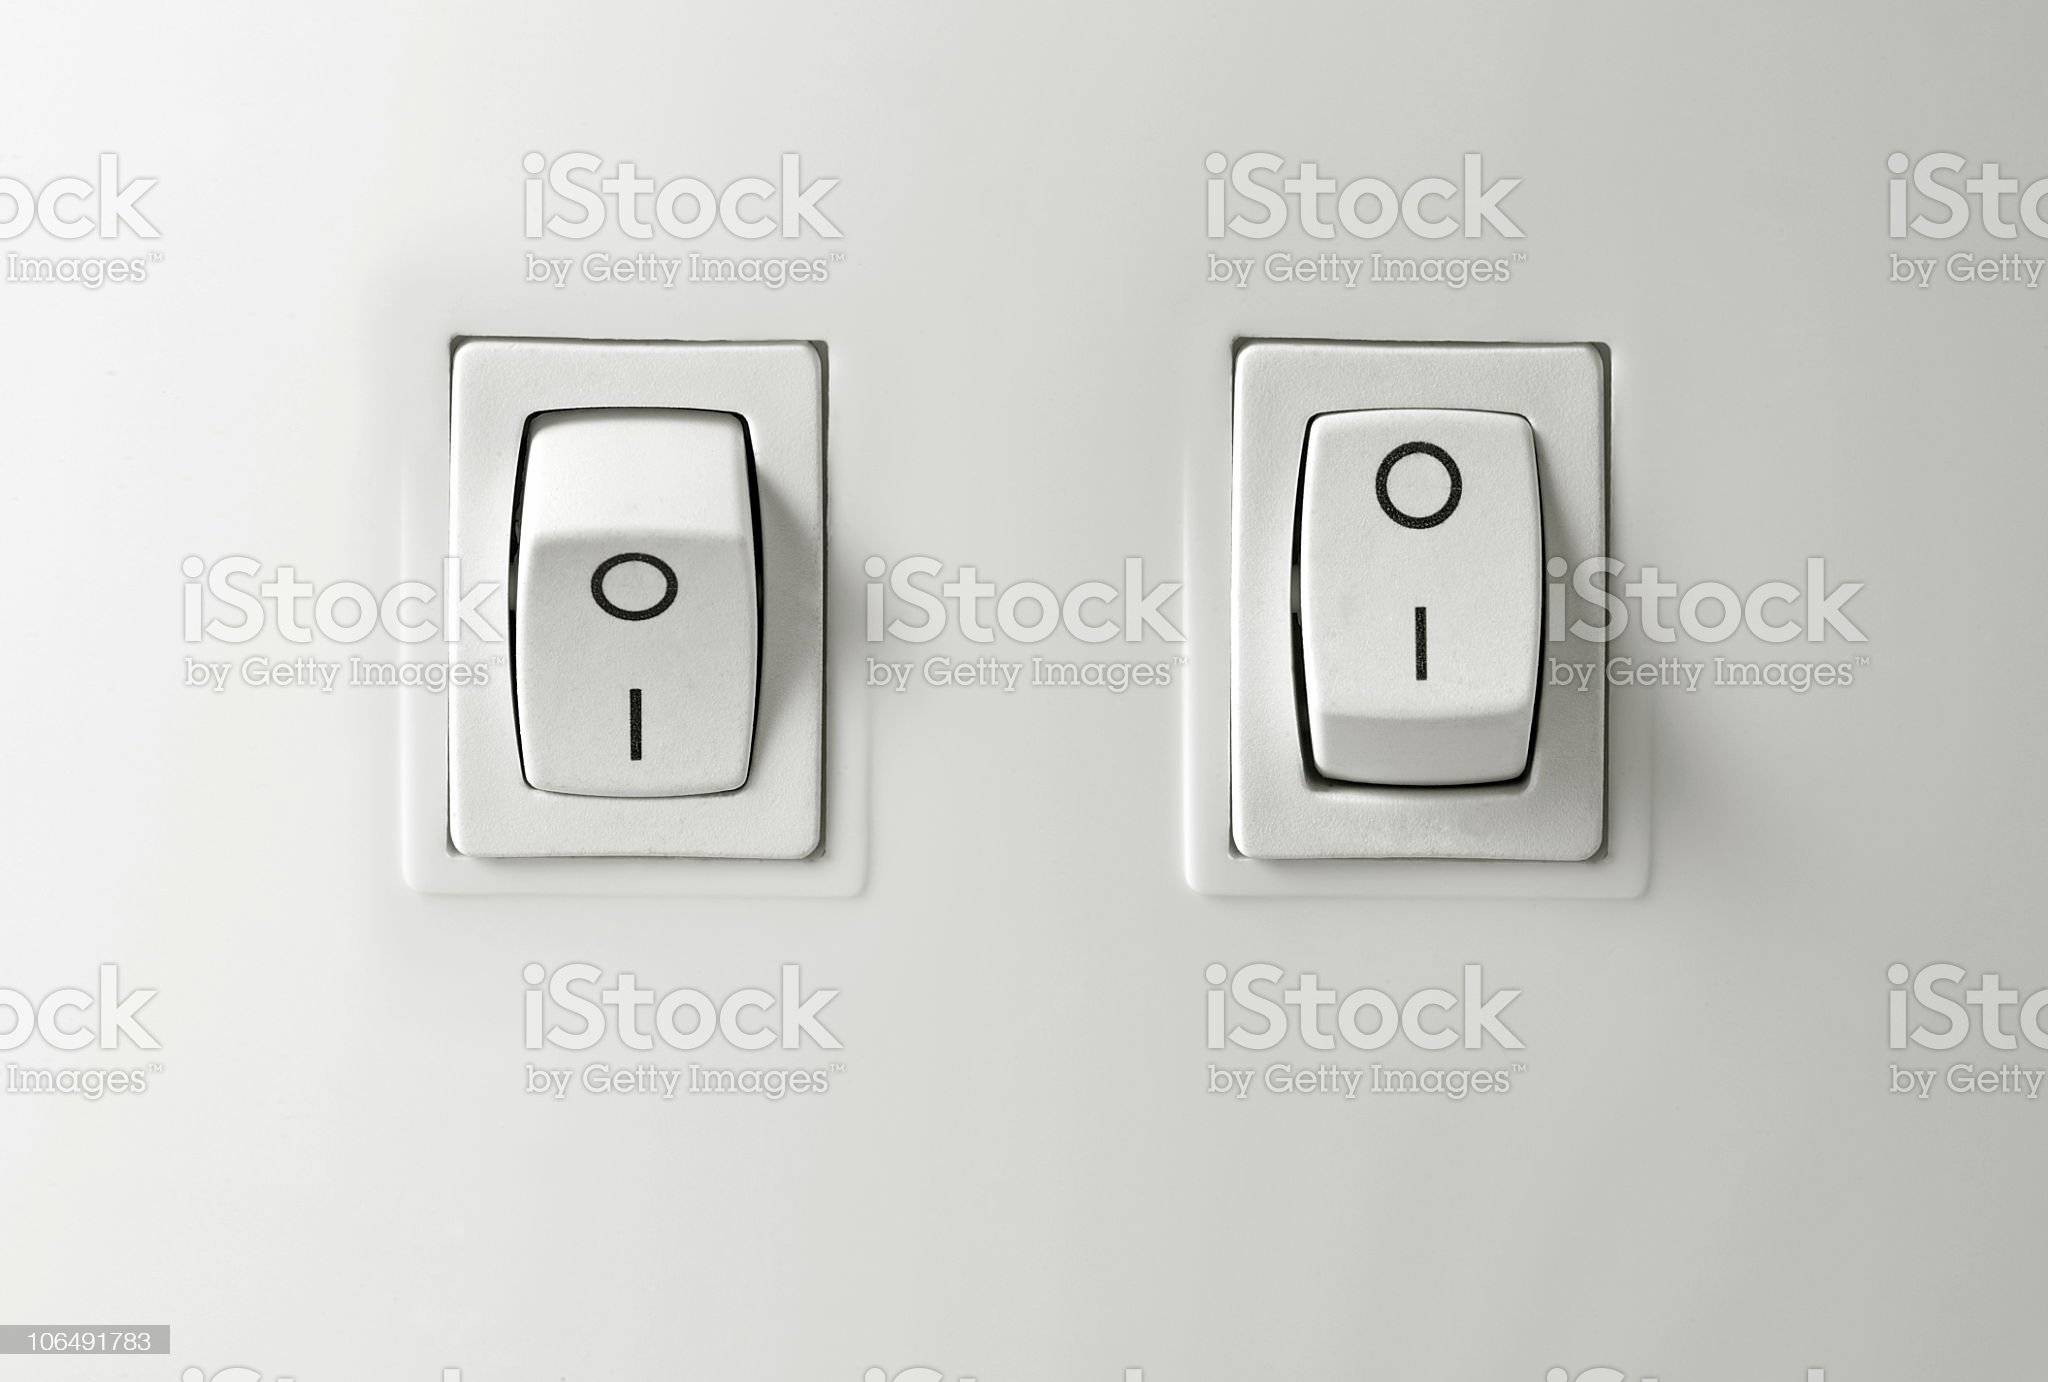 Switch on / off button royalty-free stock photo